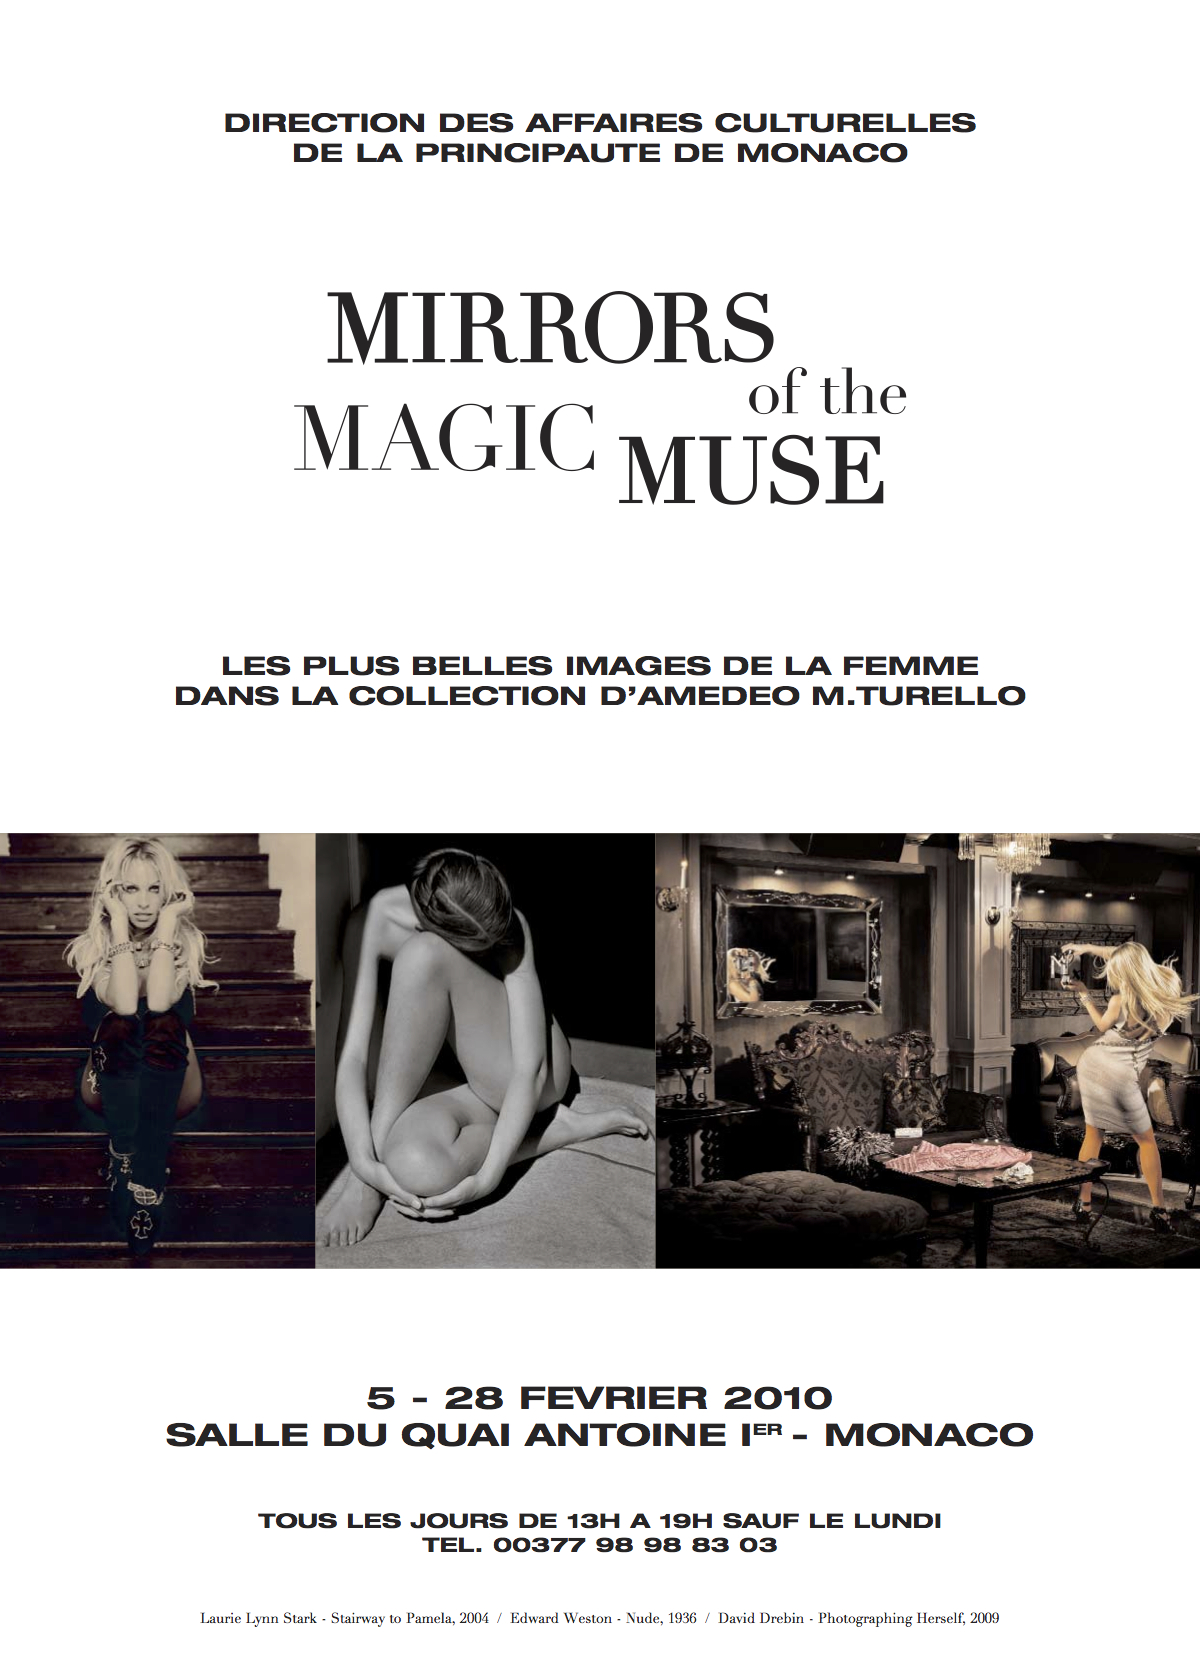 Mirrors of the Magic Muse Monaco February 5 - 28, 2010